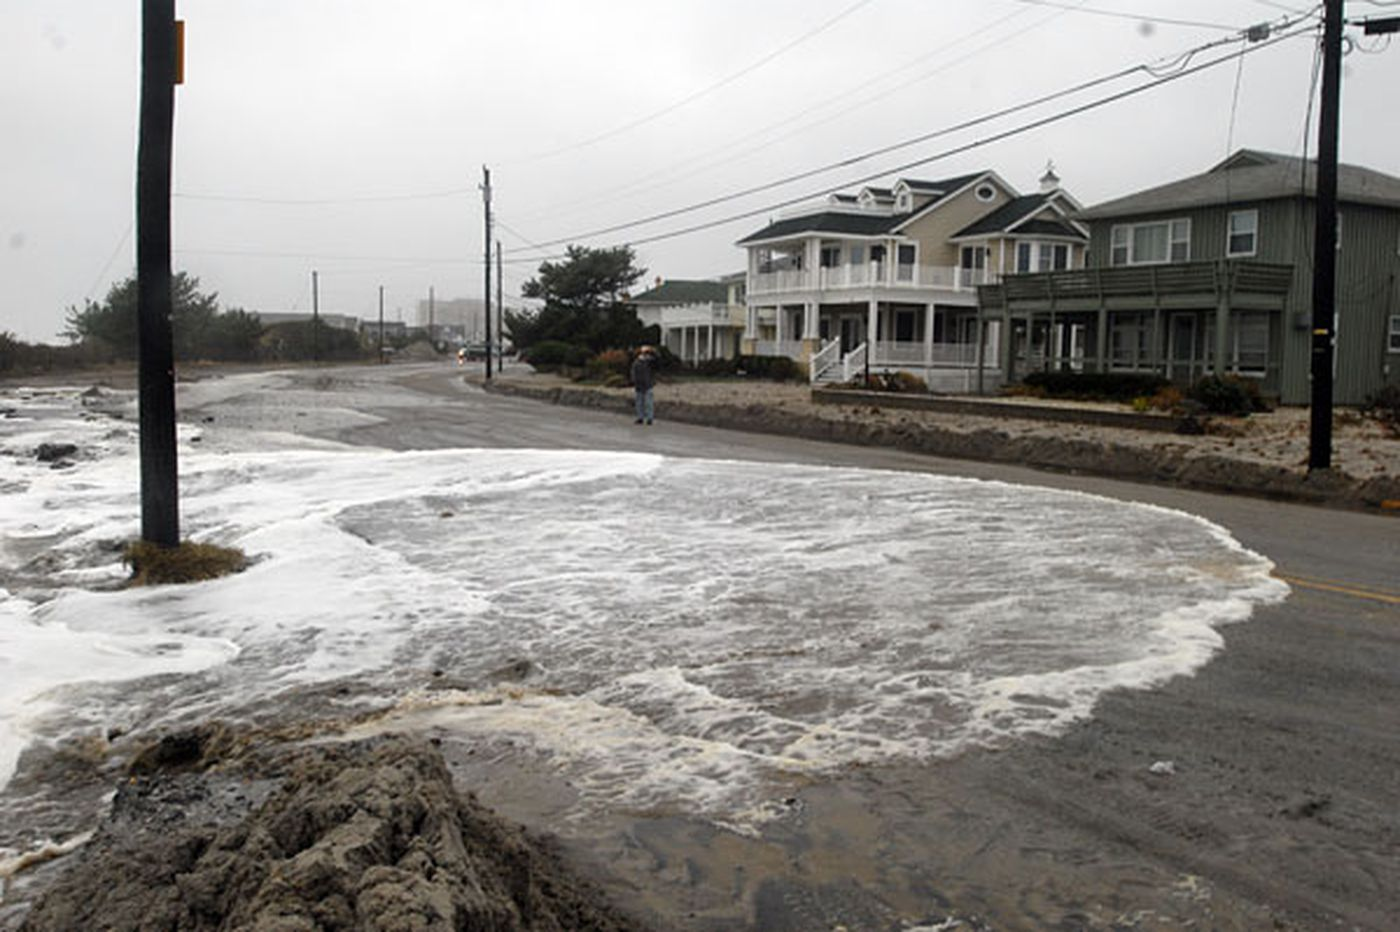 Sea level rise's impact on property values will be greatest in N.J. Shore towns, study says